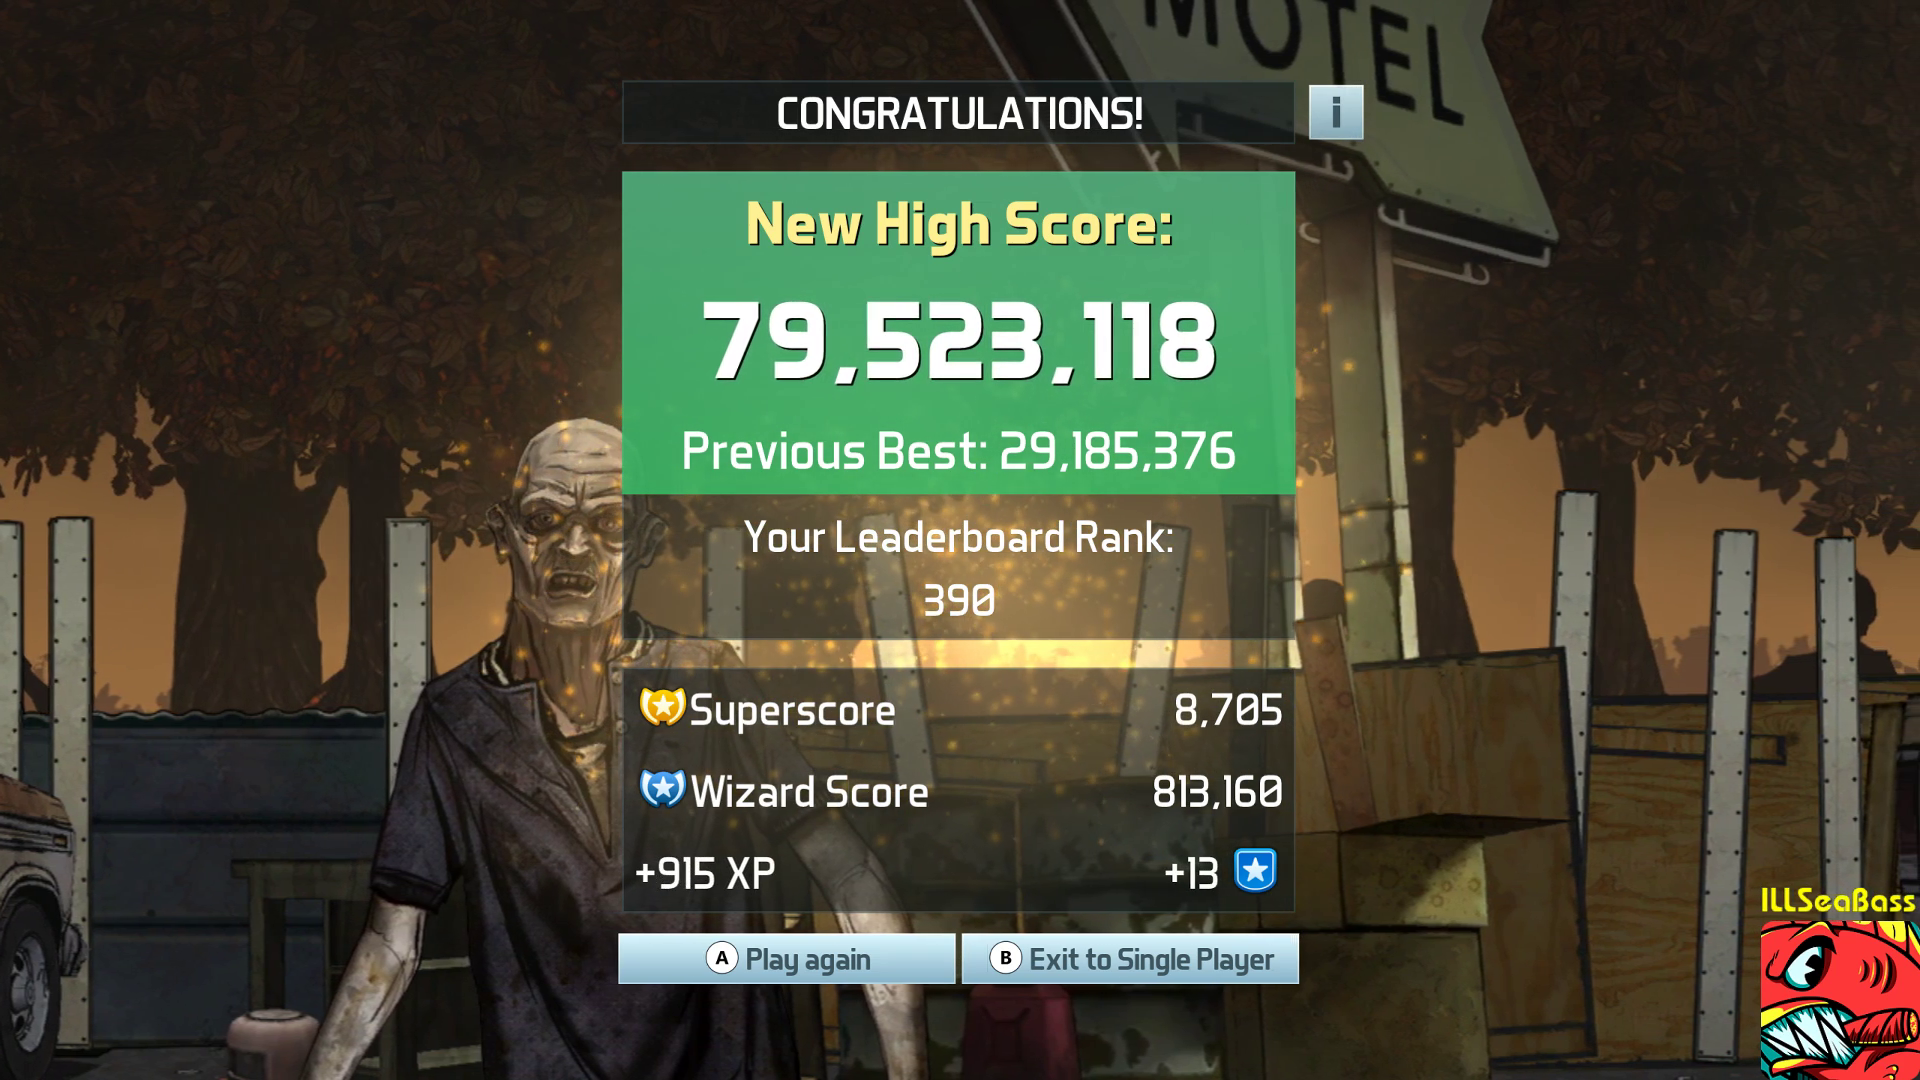 ILLSeaBass: Pinball FX3: The Walking Dead Pinball (PC) 79,523,118 points on 2017-12-28 16:49:00